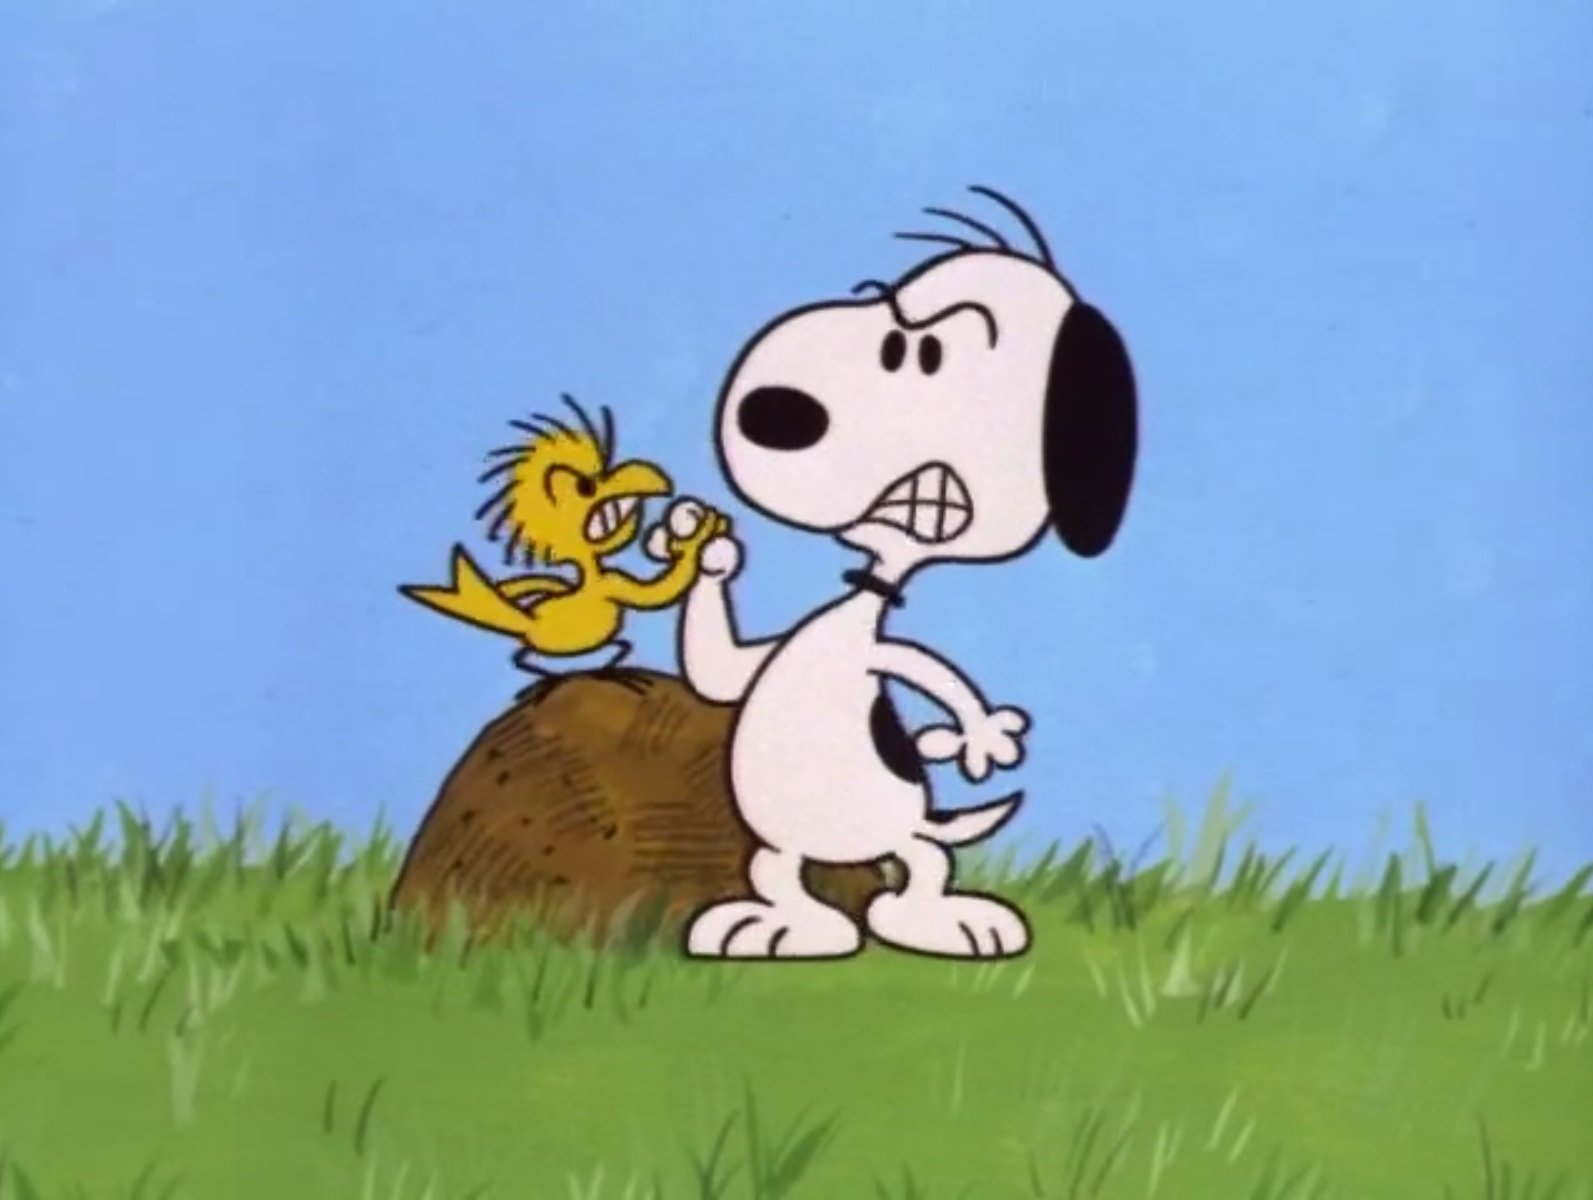 As Part Of His Training, Snoopy Wrist Wrestles A Bird That Could Be  Woodstocku0027s Tougher Brother!